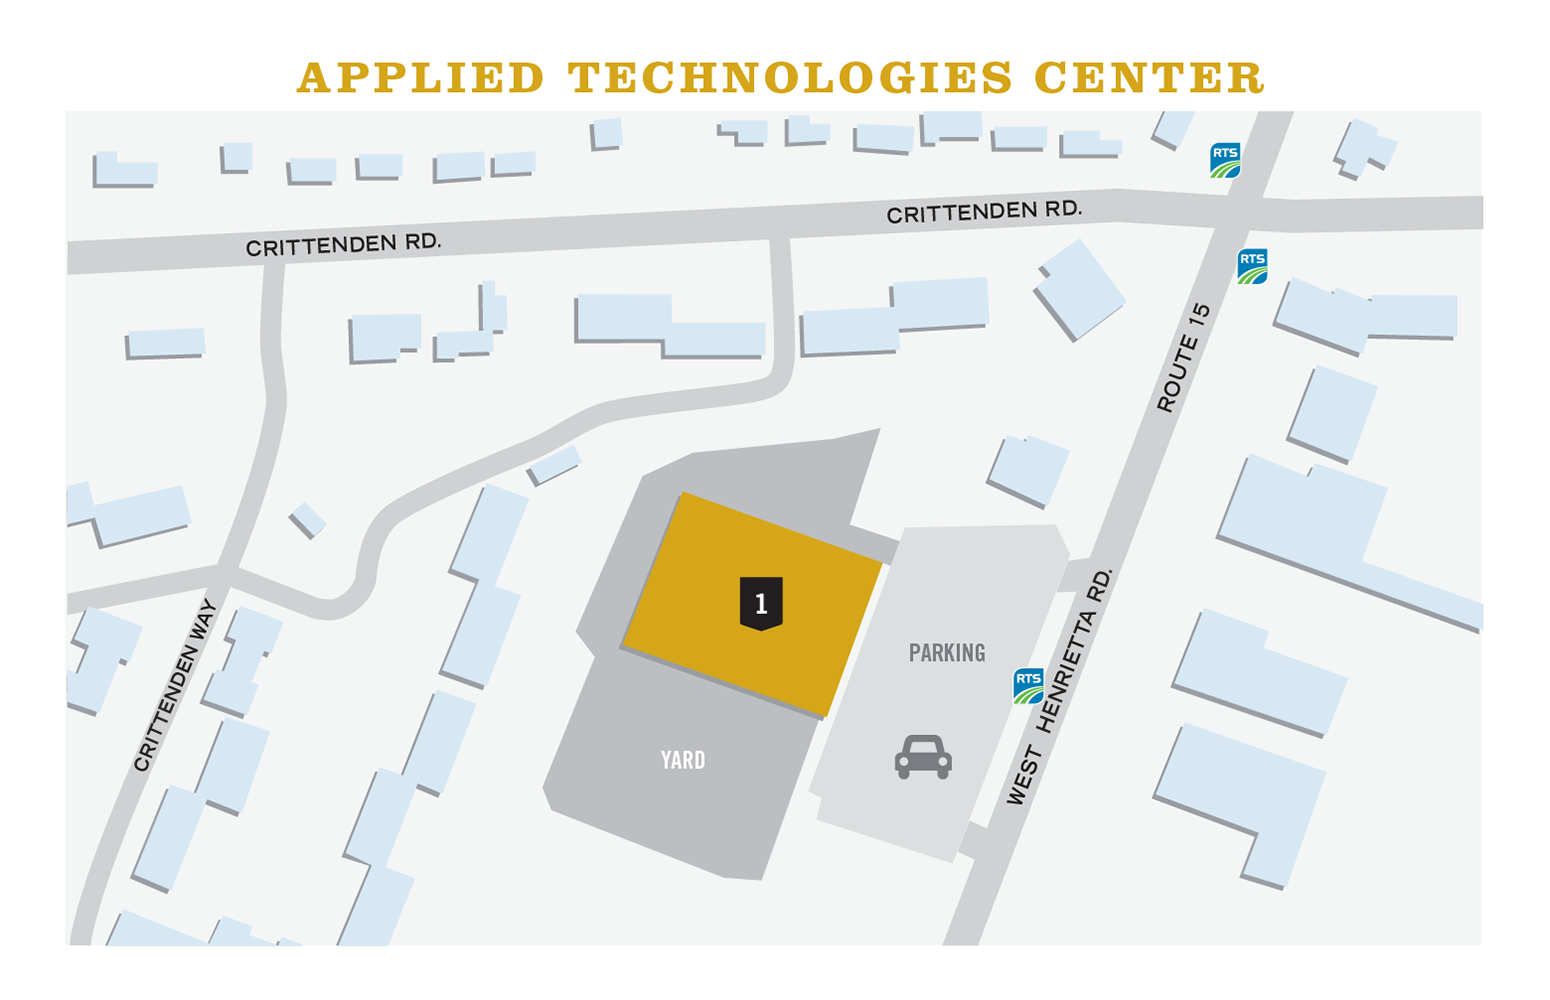 Map of MCC's Applied Technologies Center